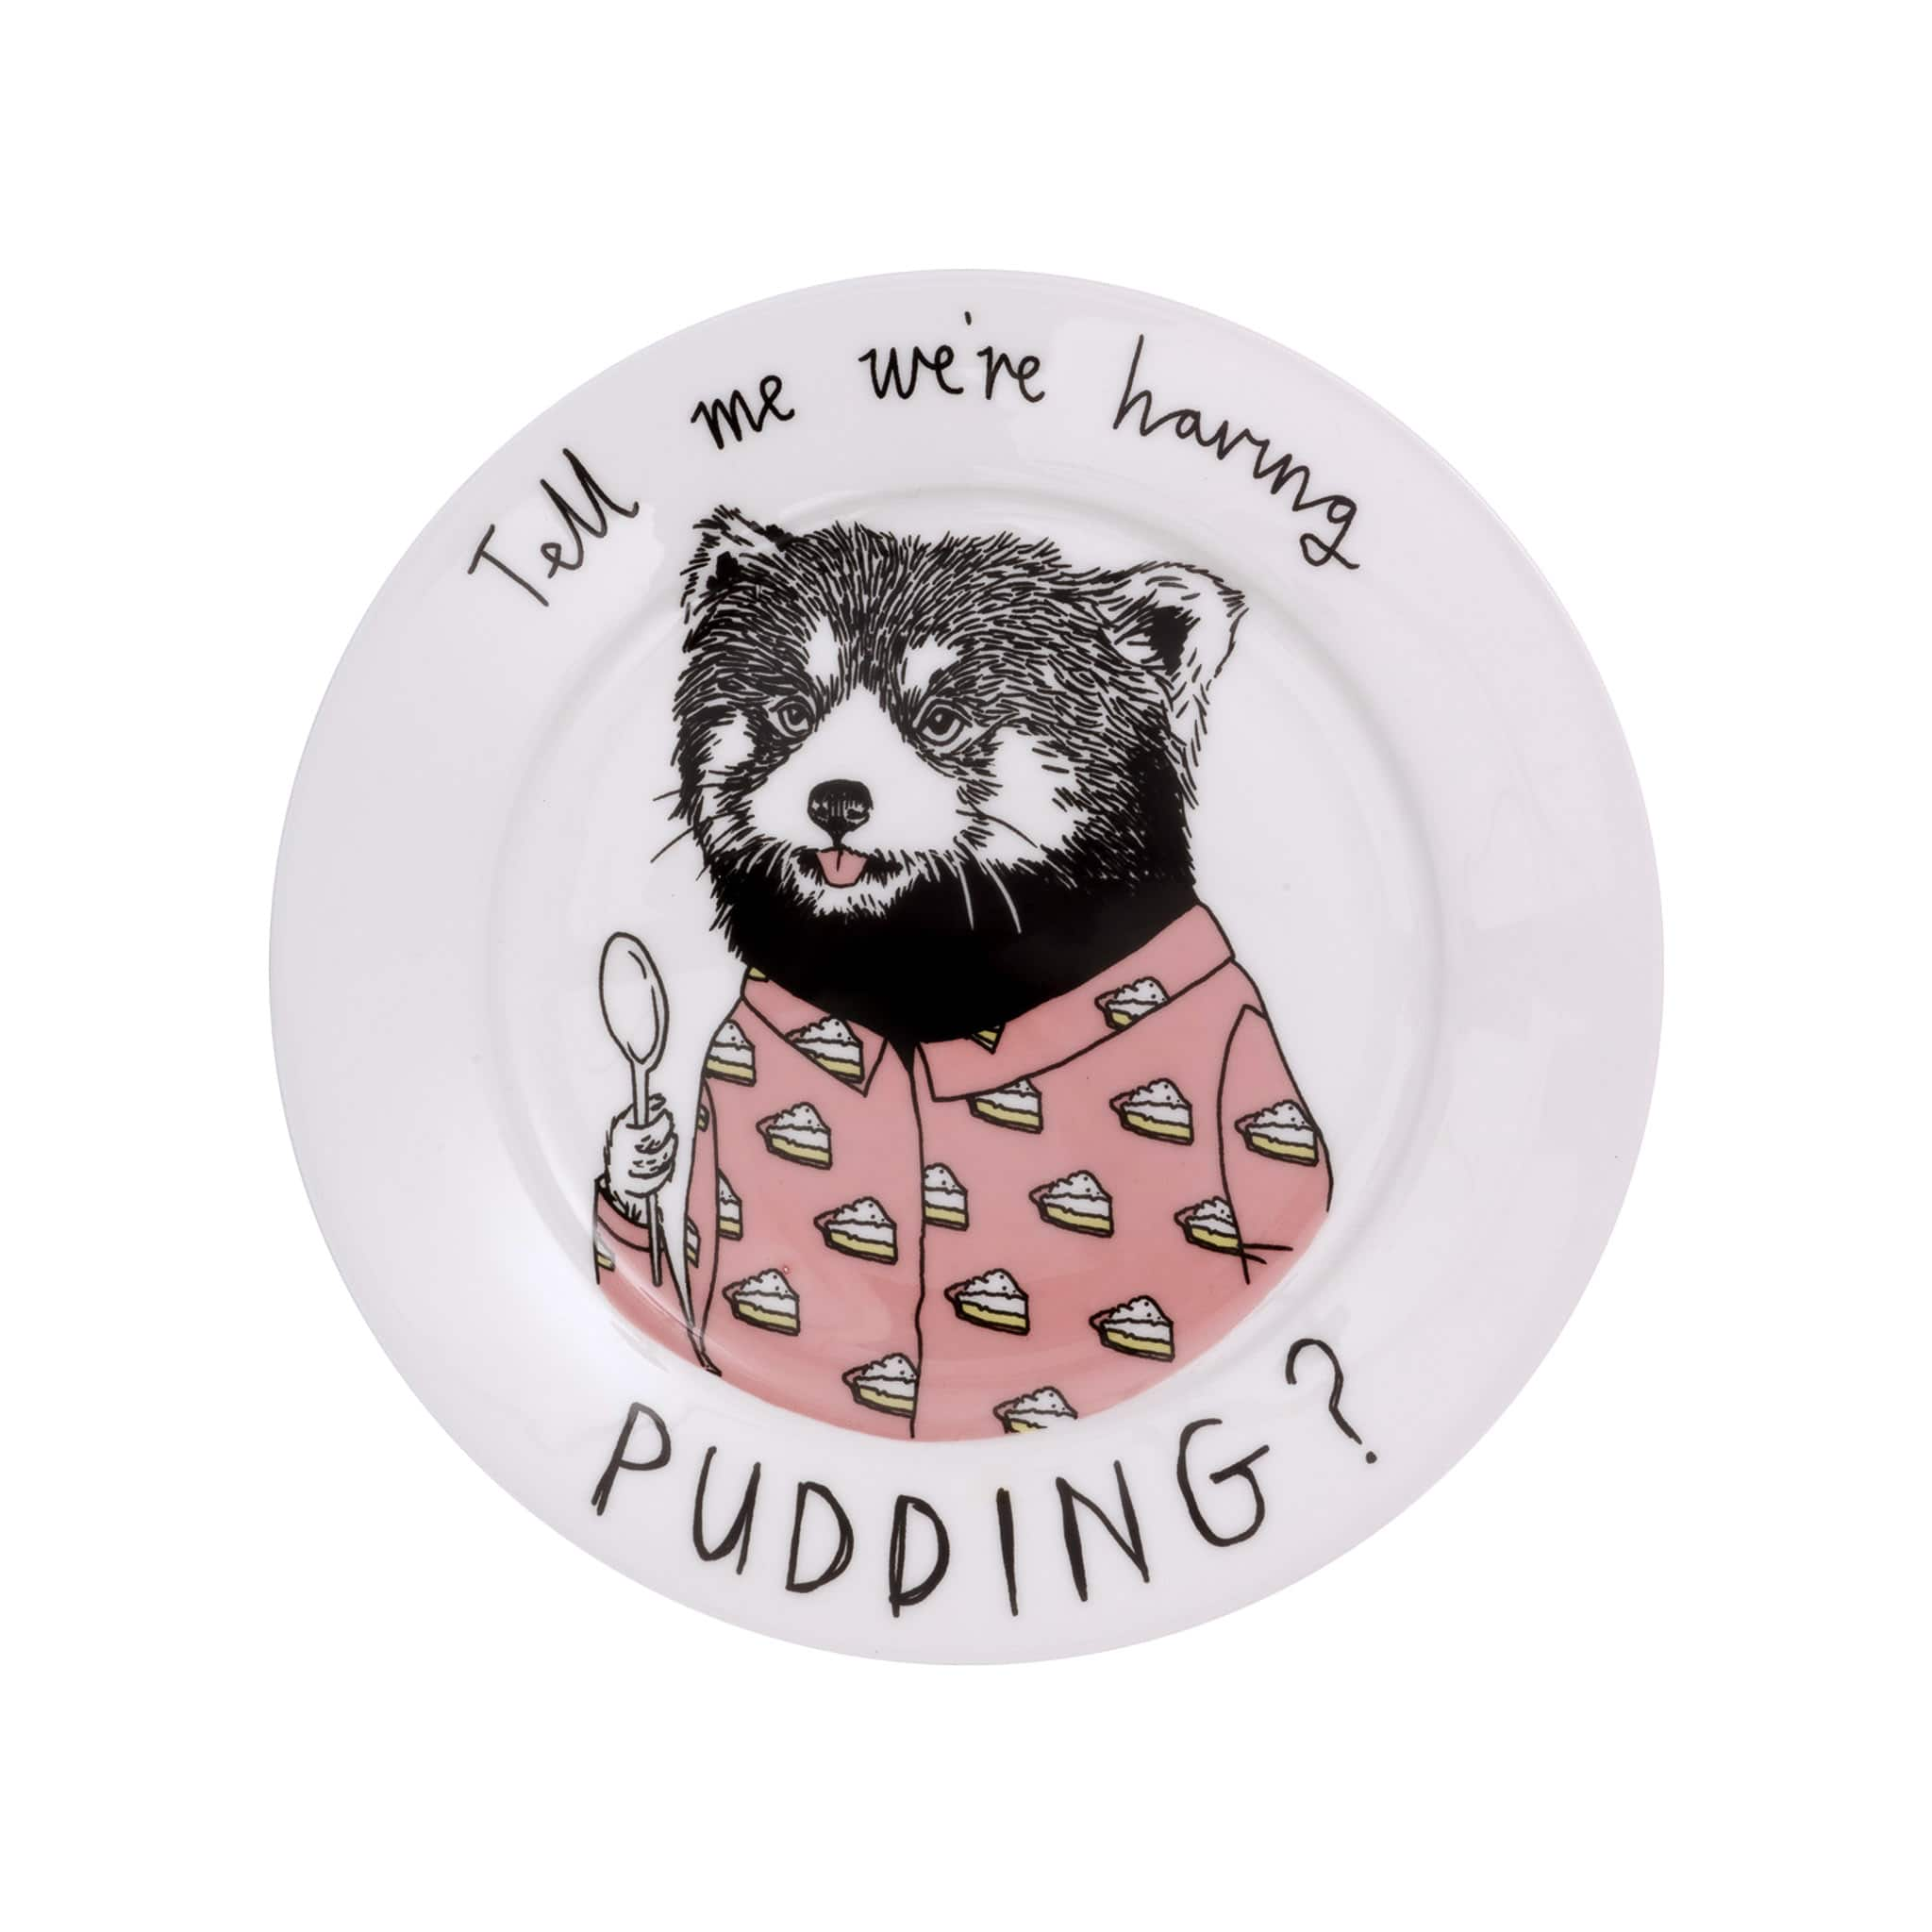 Tell Me We're Having Pudding Side Plate 20cm